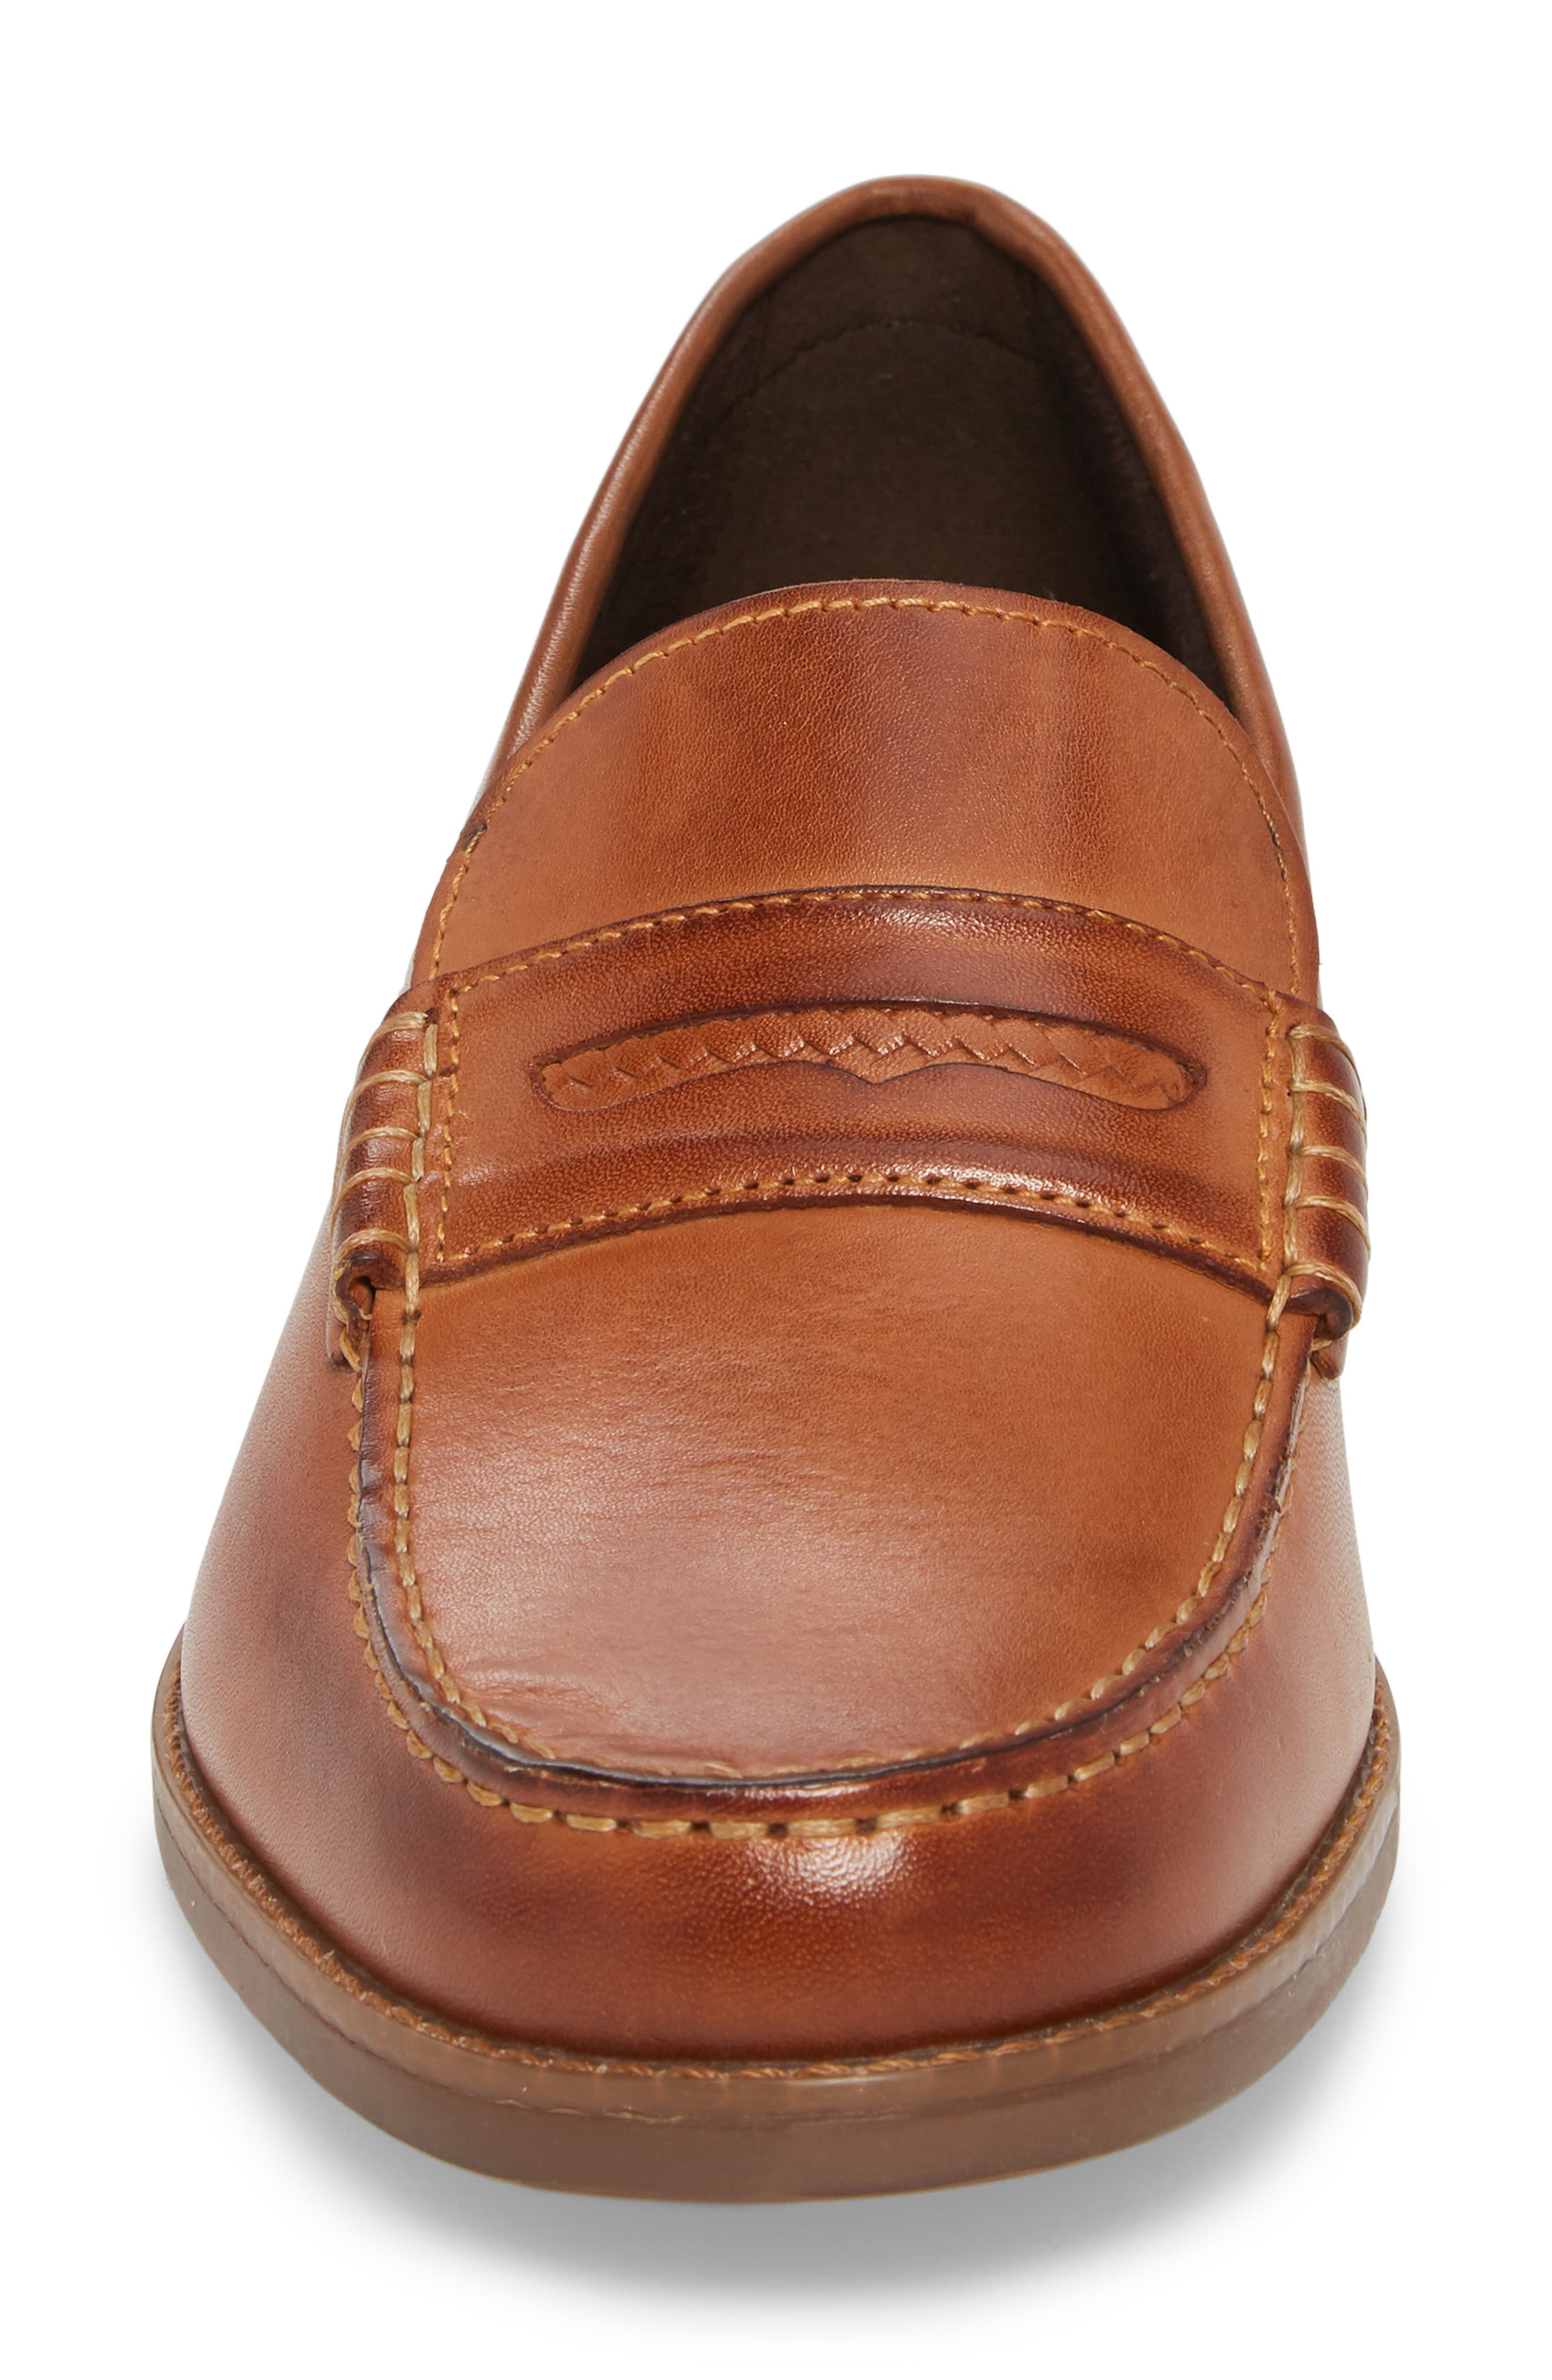 Cayleb Moc Toe Penny Loafer,                             Alternate thumbnail 4, color,                             Cognac Leather